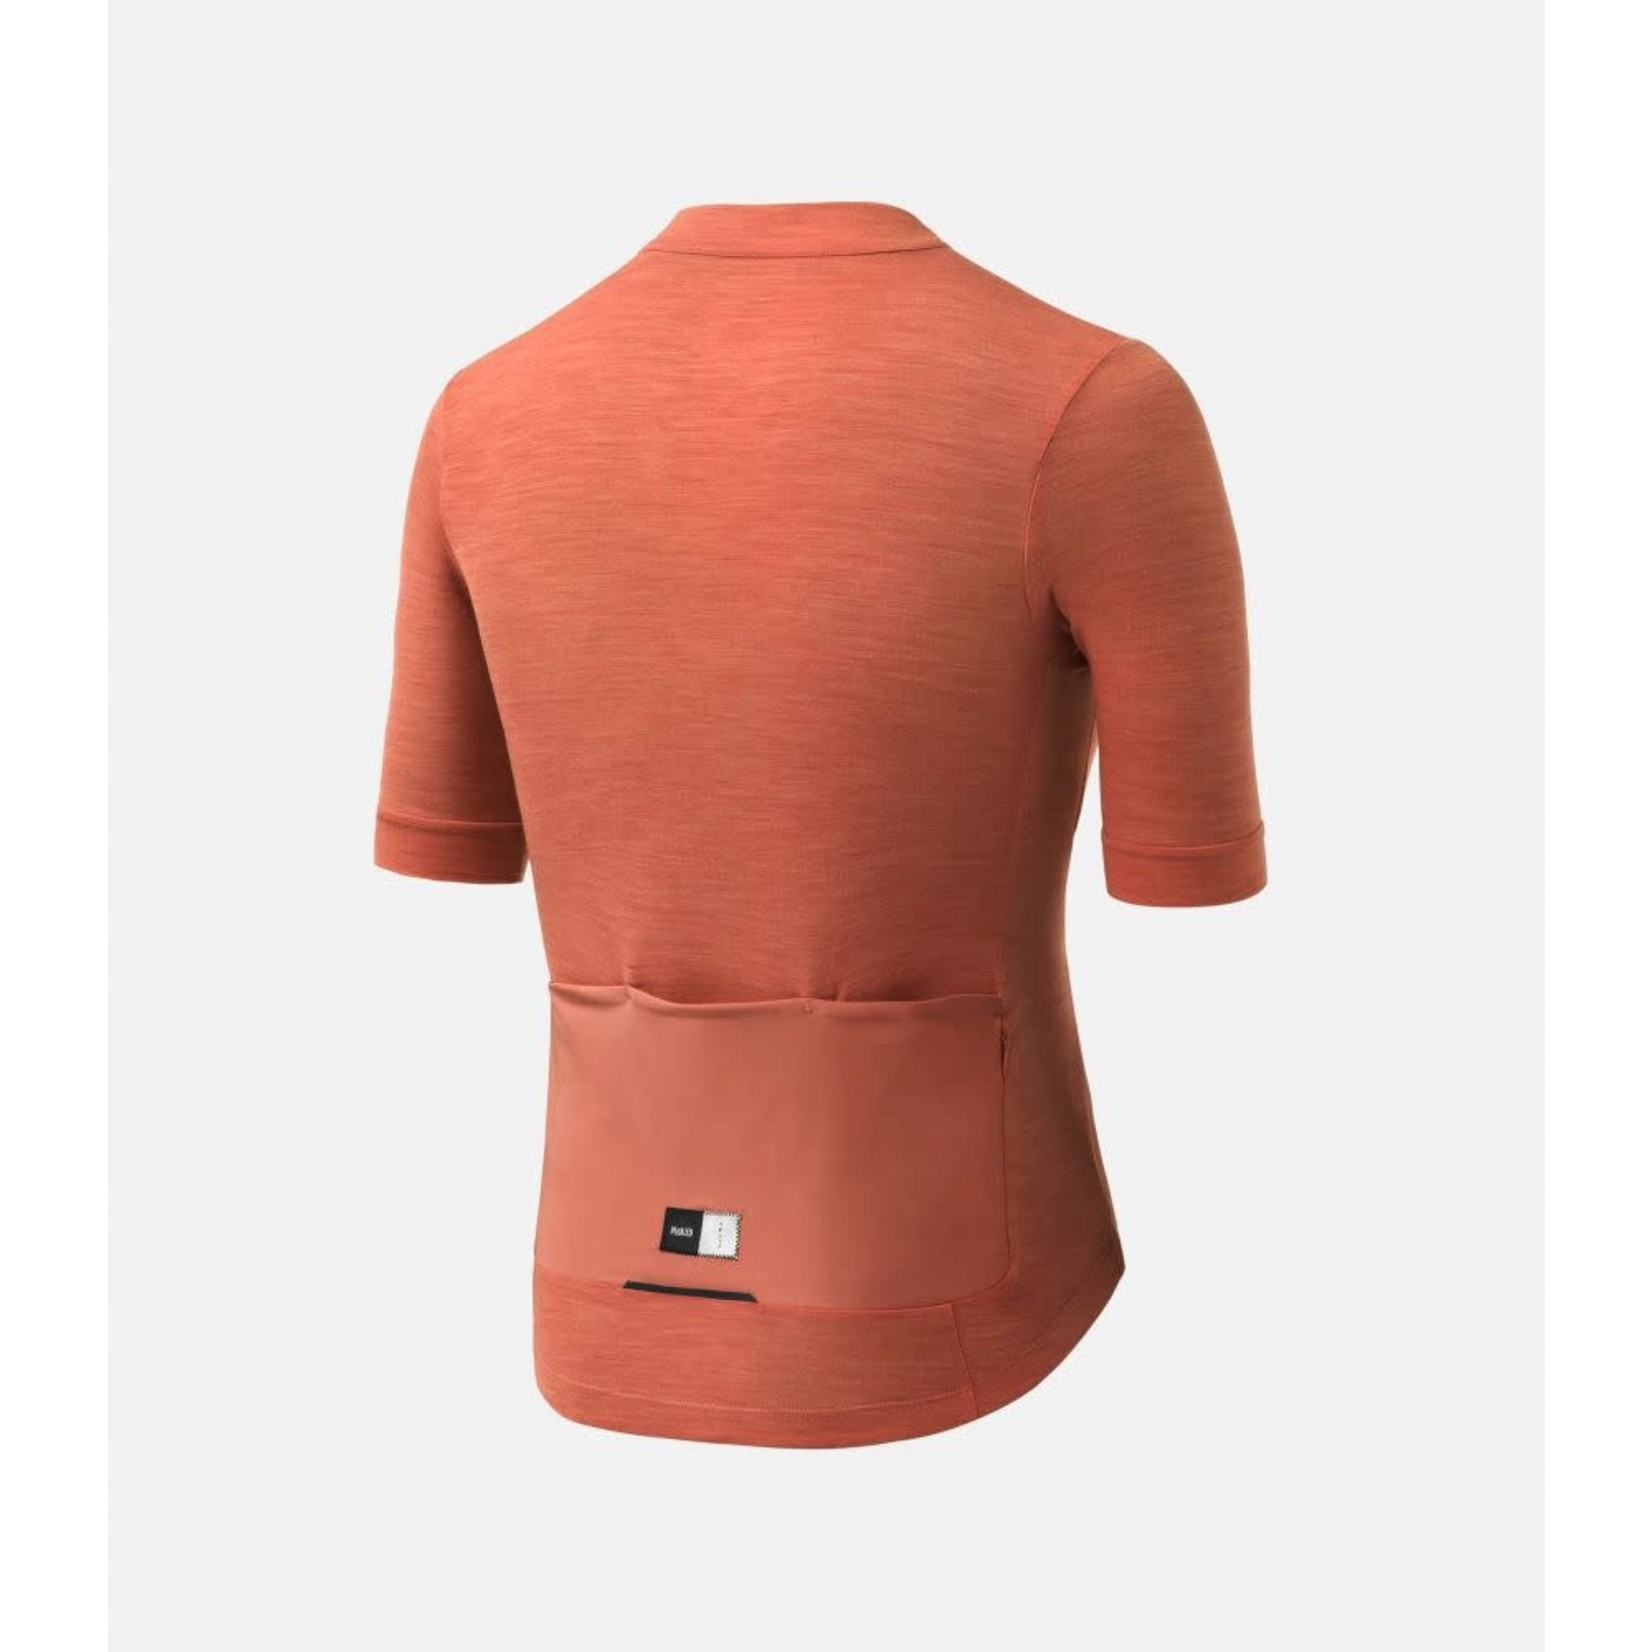 PEdALED PEdALED Essential Jersey XL orange